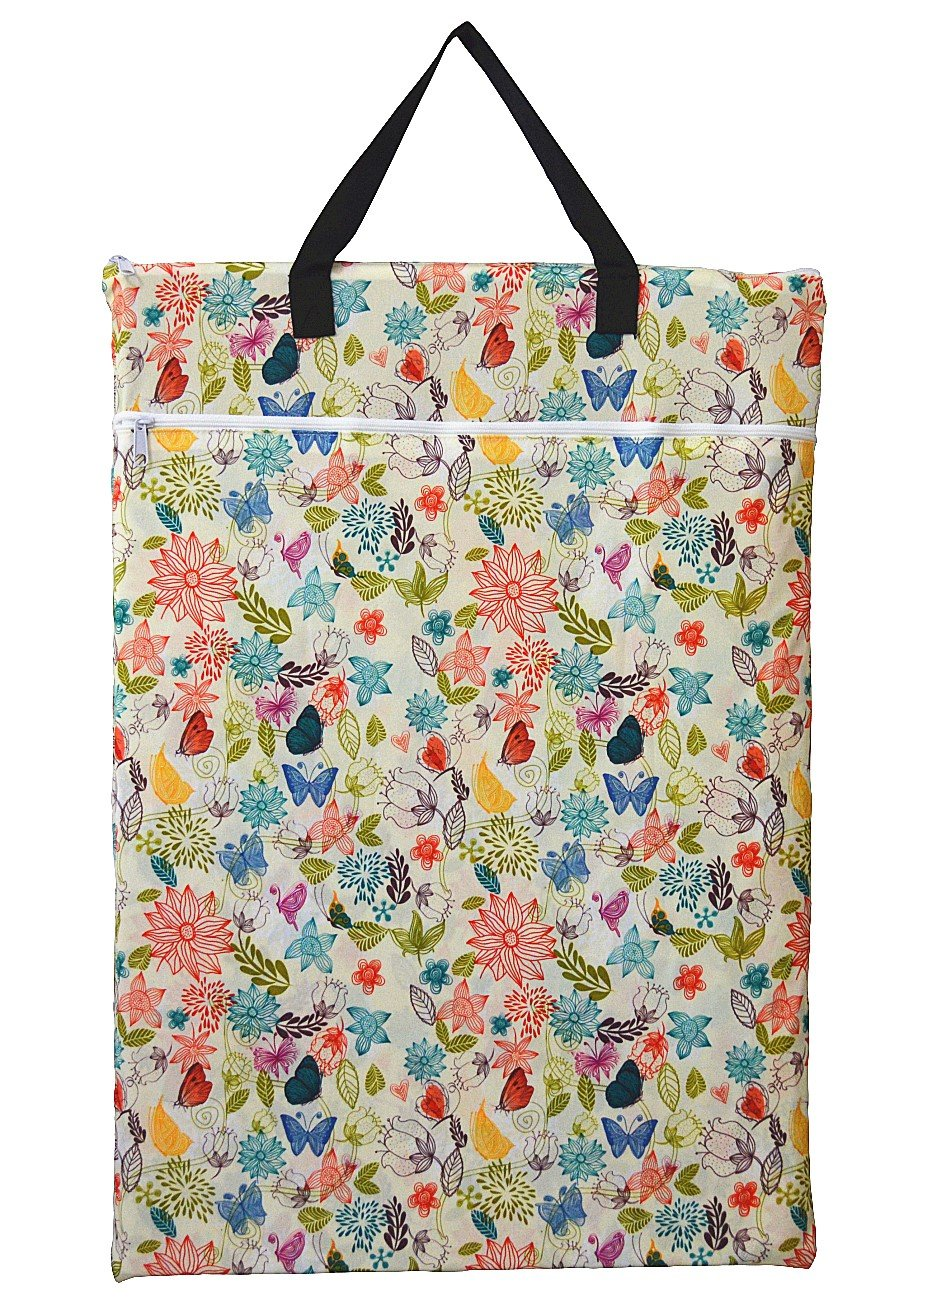 Large Hanging Wet/dry Cloth Diaper Pail Bag for Reusable Diapers or Laundry (Bloom)